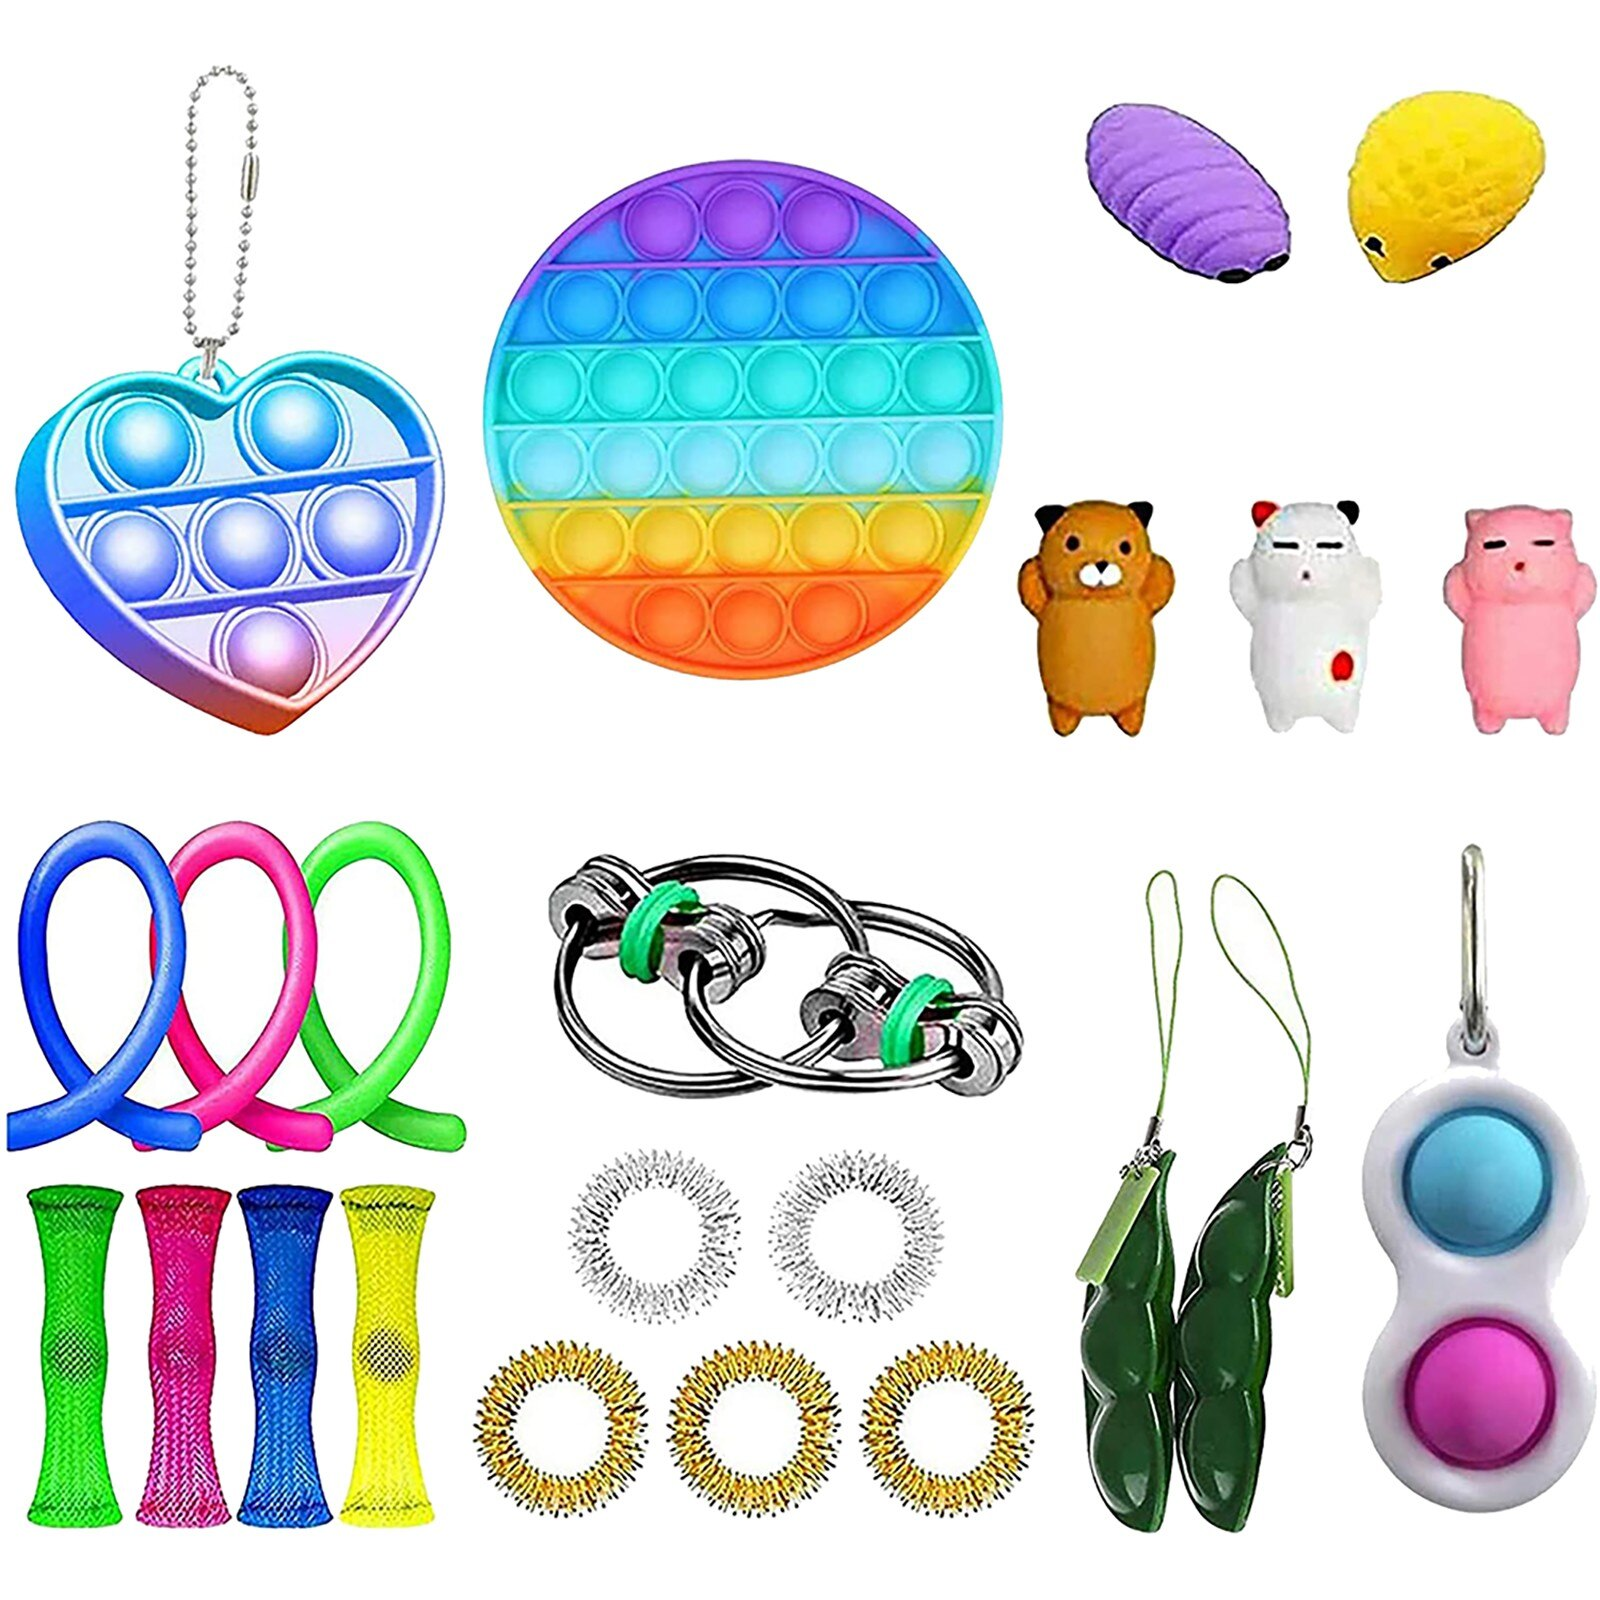 1set Fidget Toys Anti Stress Set Stretchy Strings Toys Gift Pack For Adults Kids Squishy Sensory Antistress Relief Figet Toys